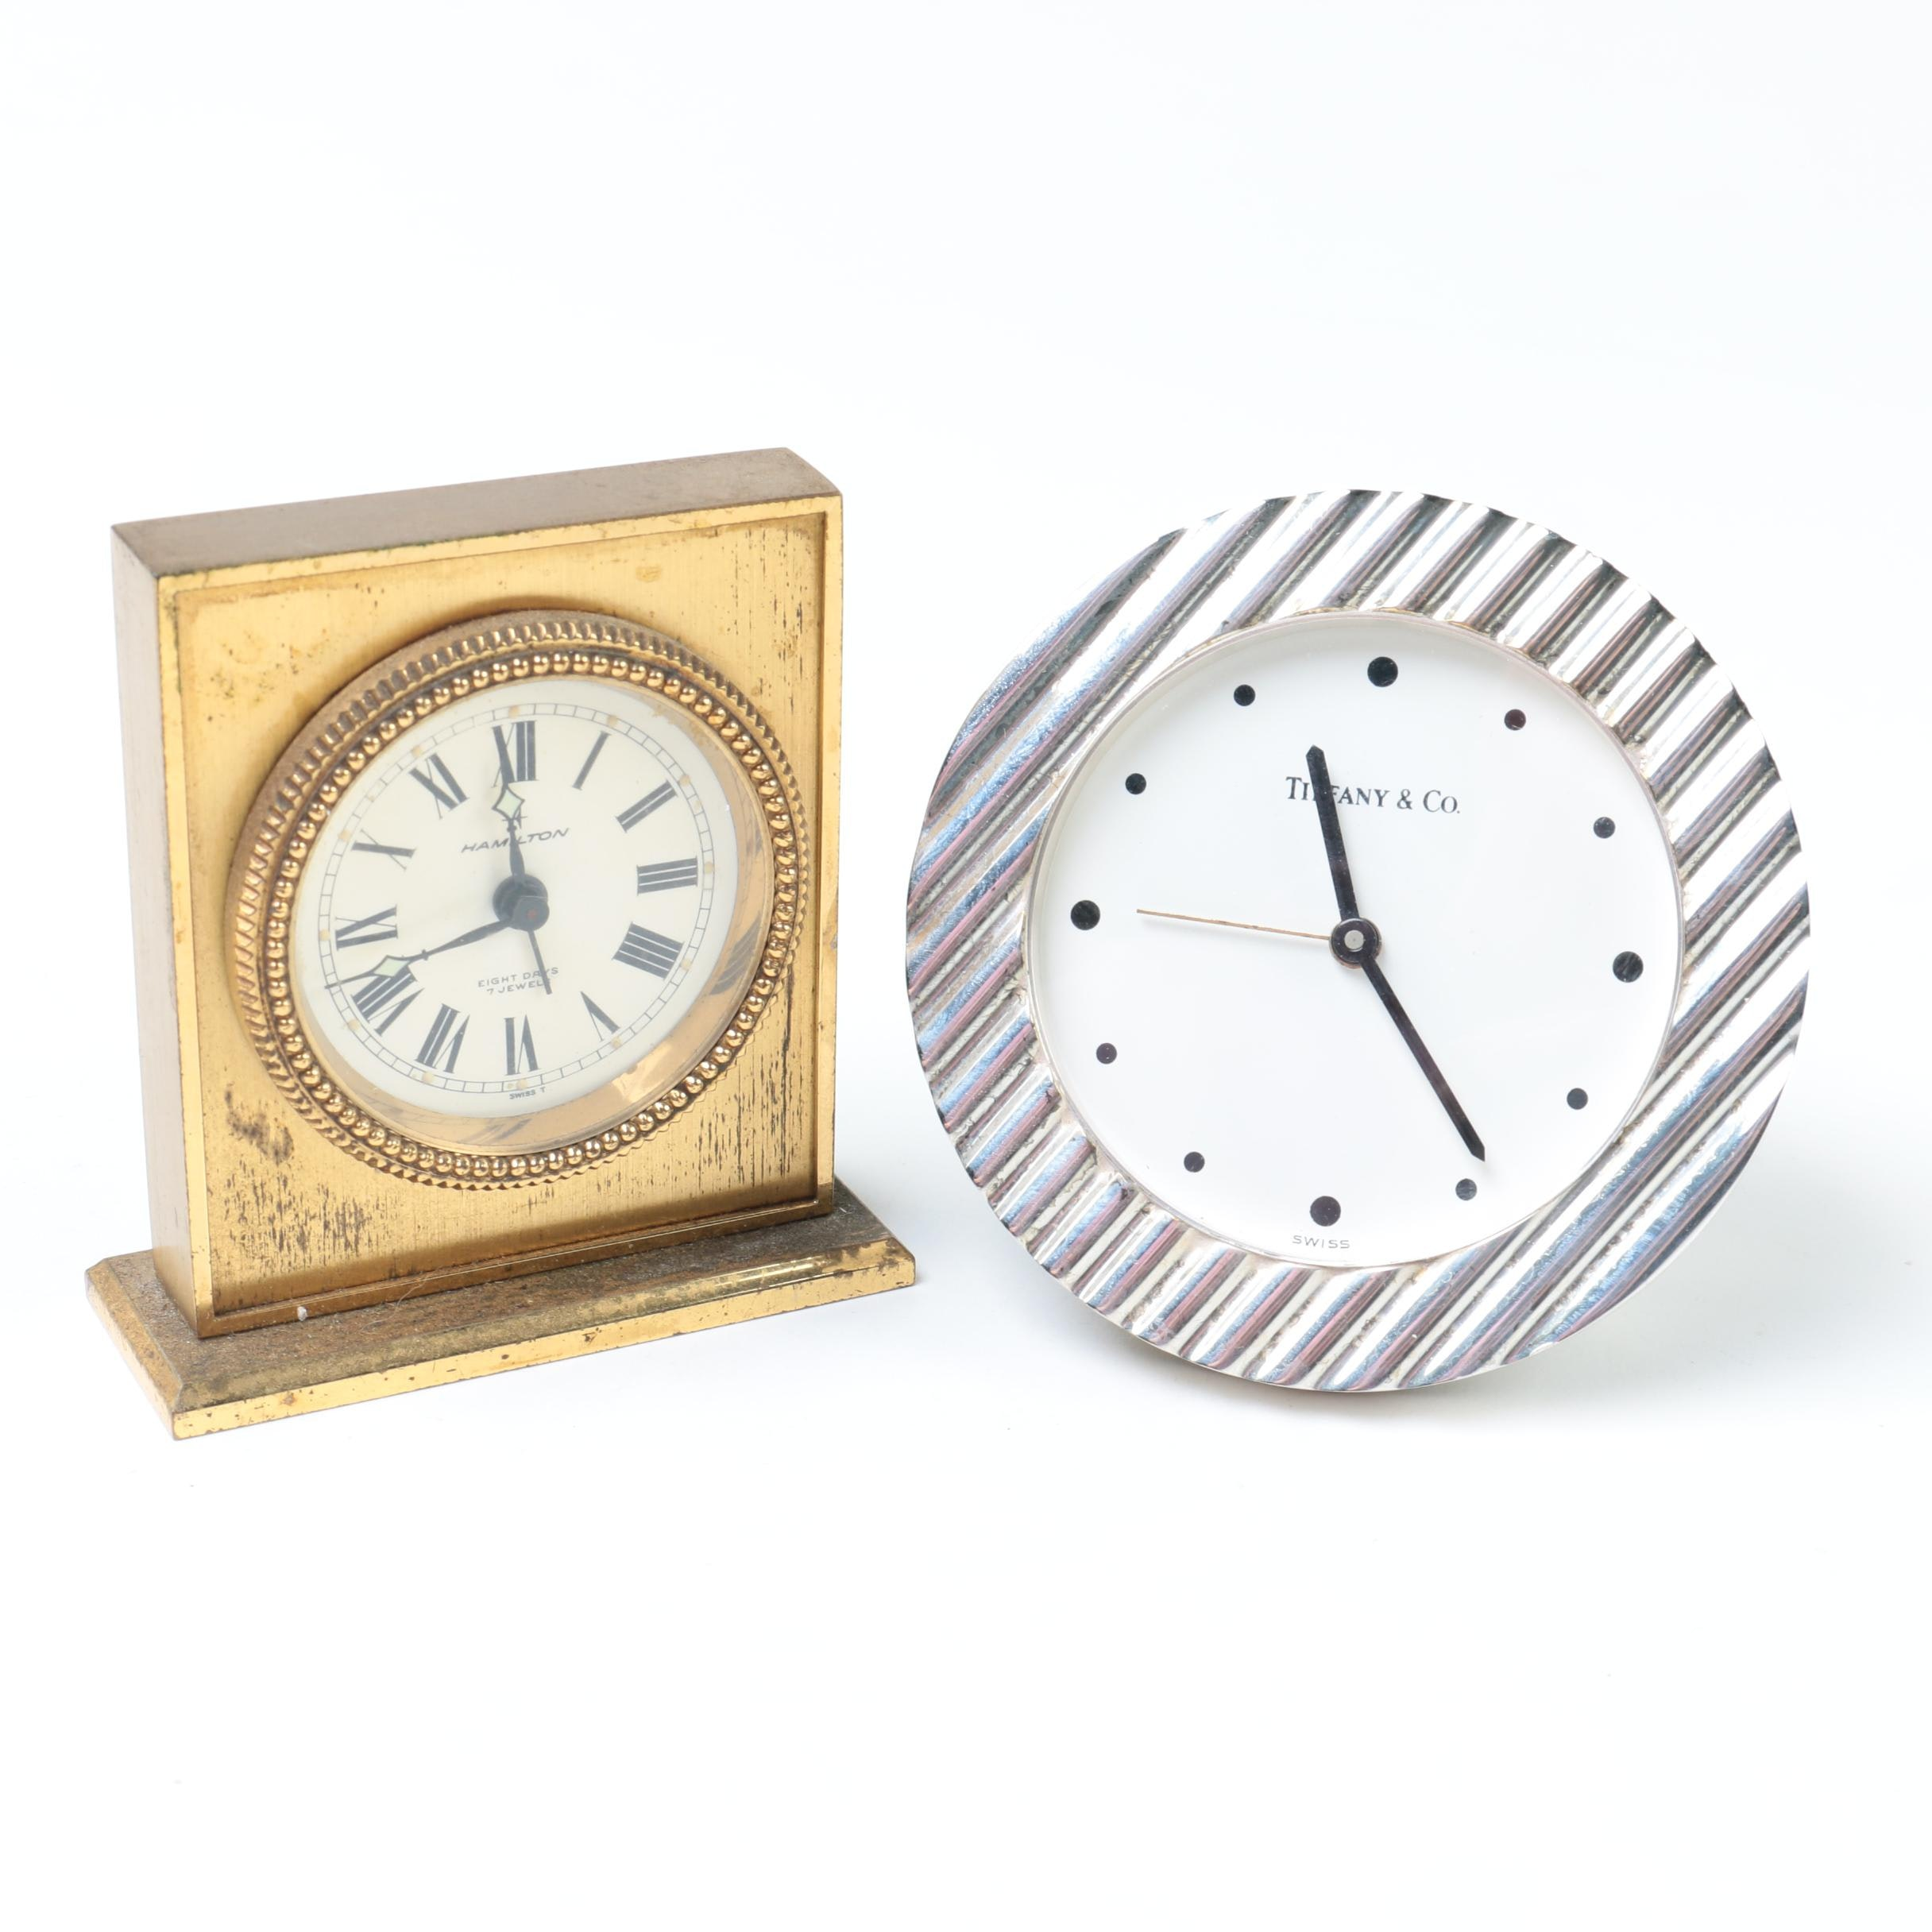 Alarm Clocks including Hamilton and Tiffany & Co.